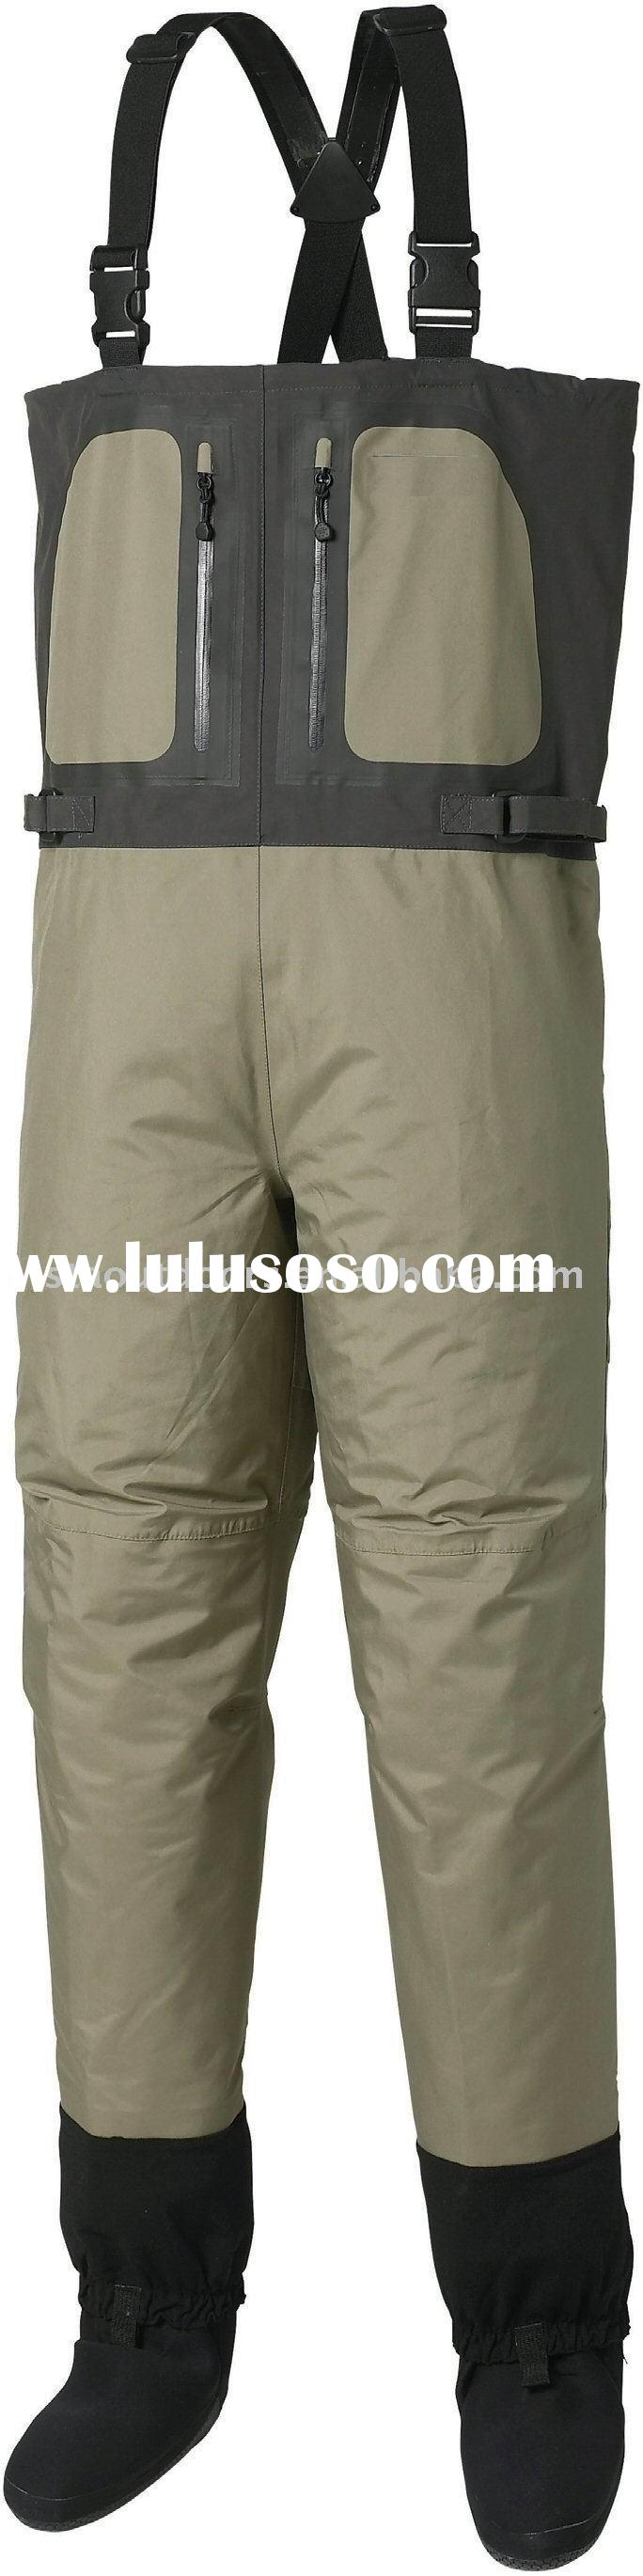 Waders,breathable wader,fly fishing outfitters,chest wader